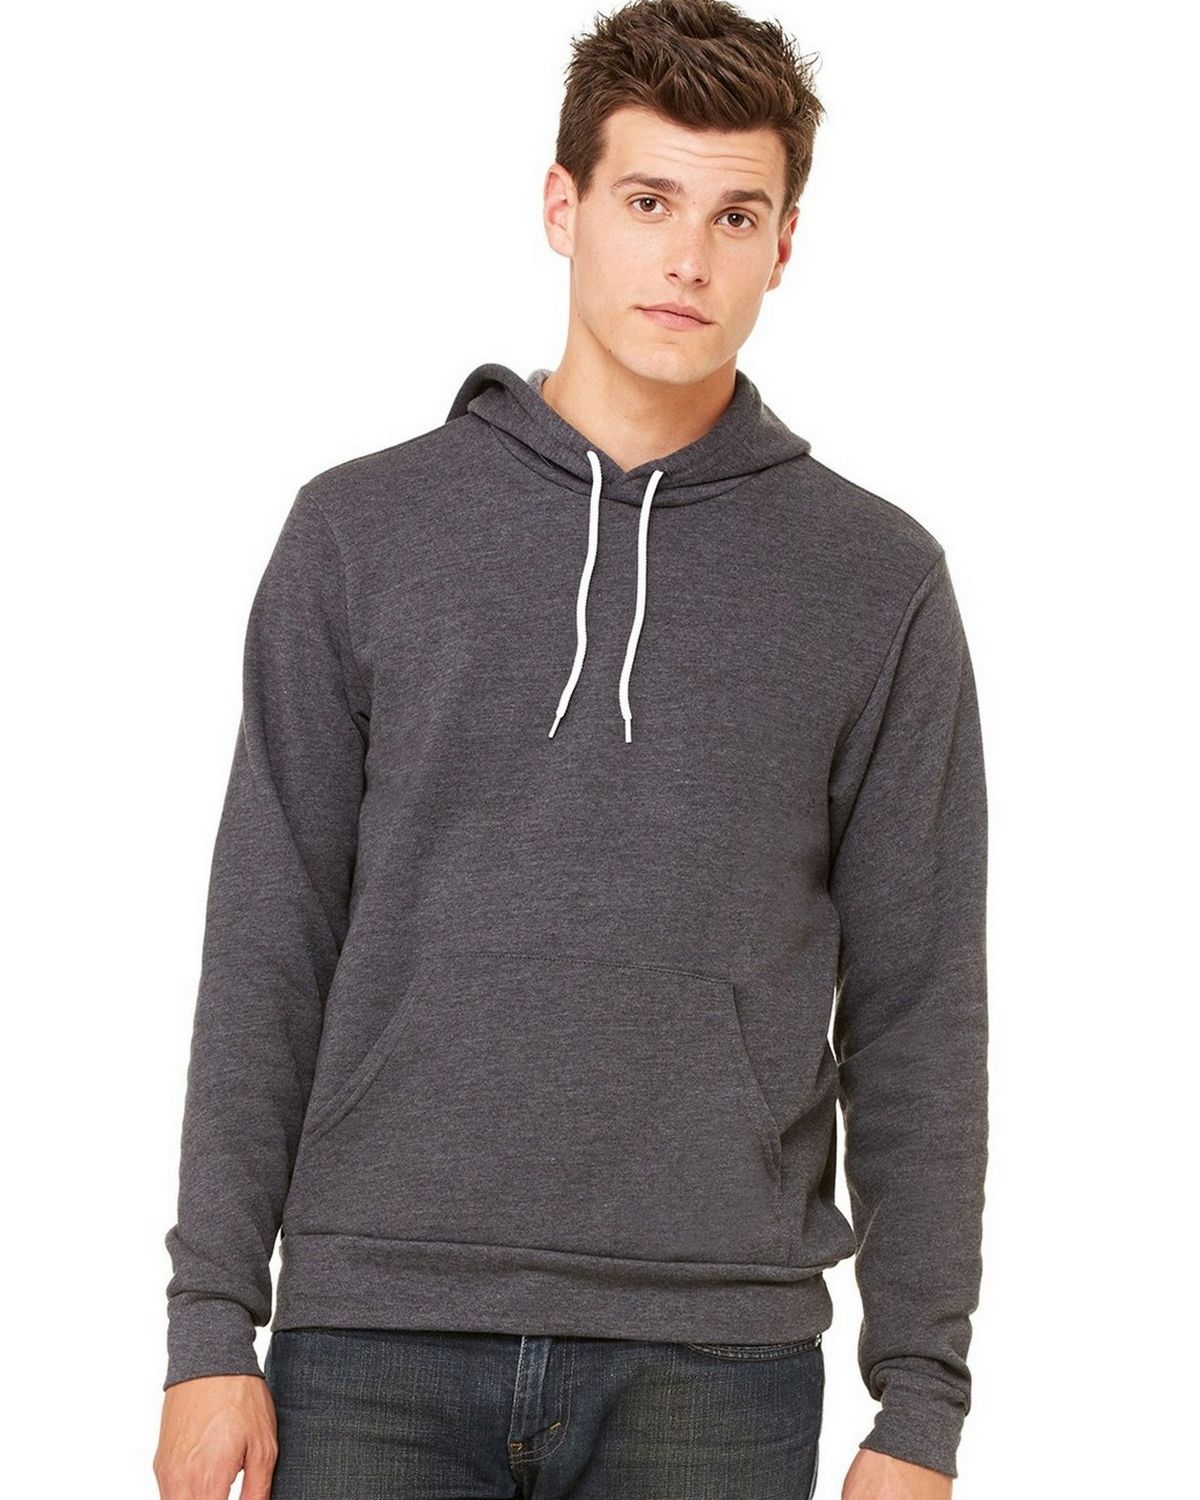 Bella + Canvas C3719 Unisex Pullover Hoodie - Dark Grey Heather - 2X C3719